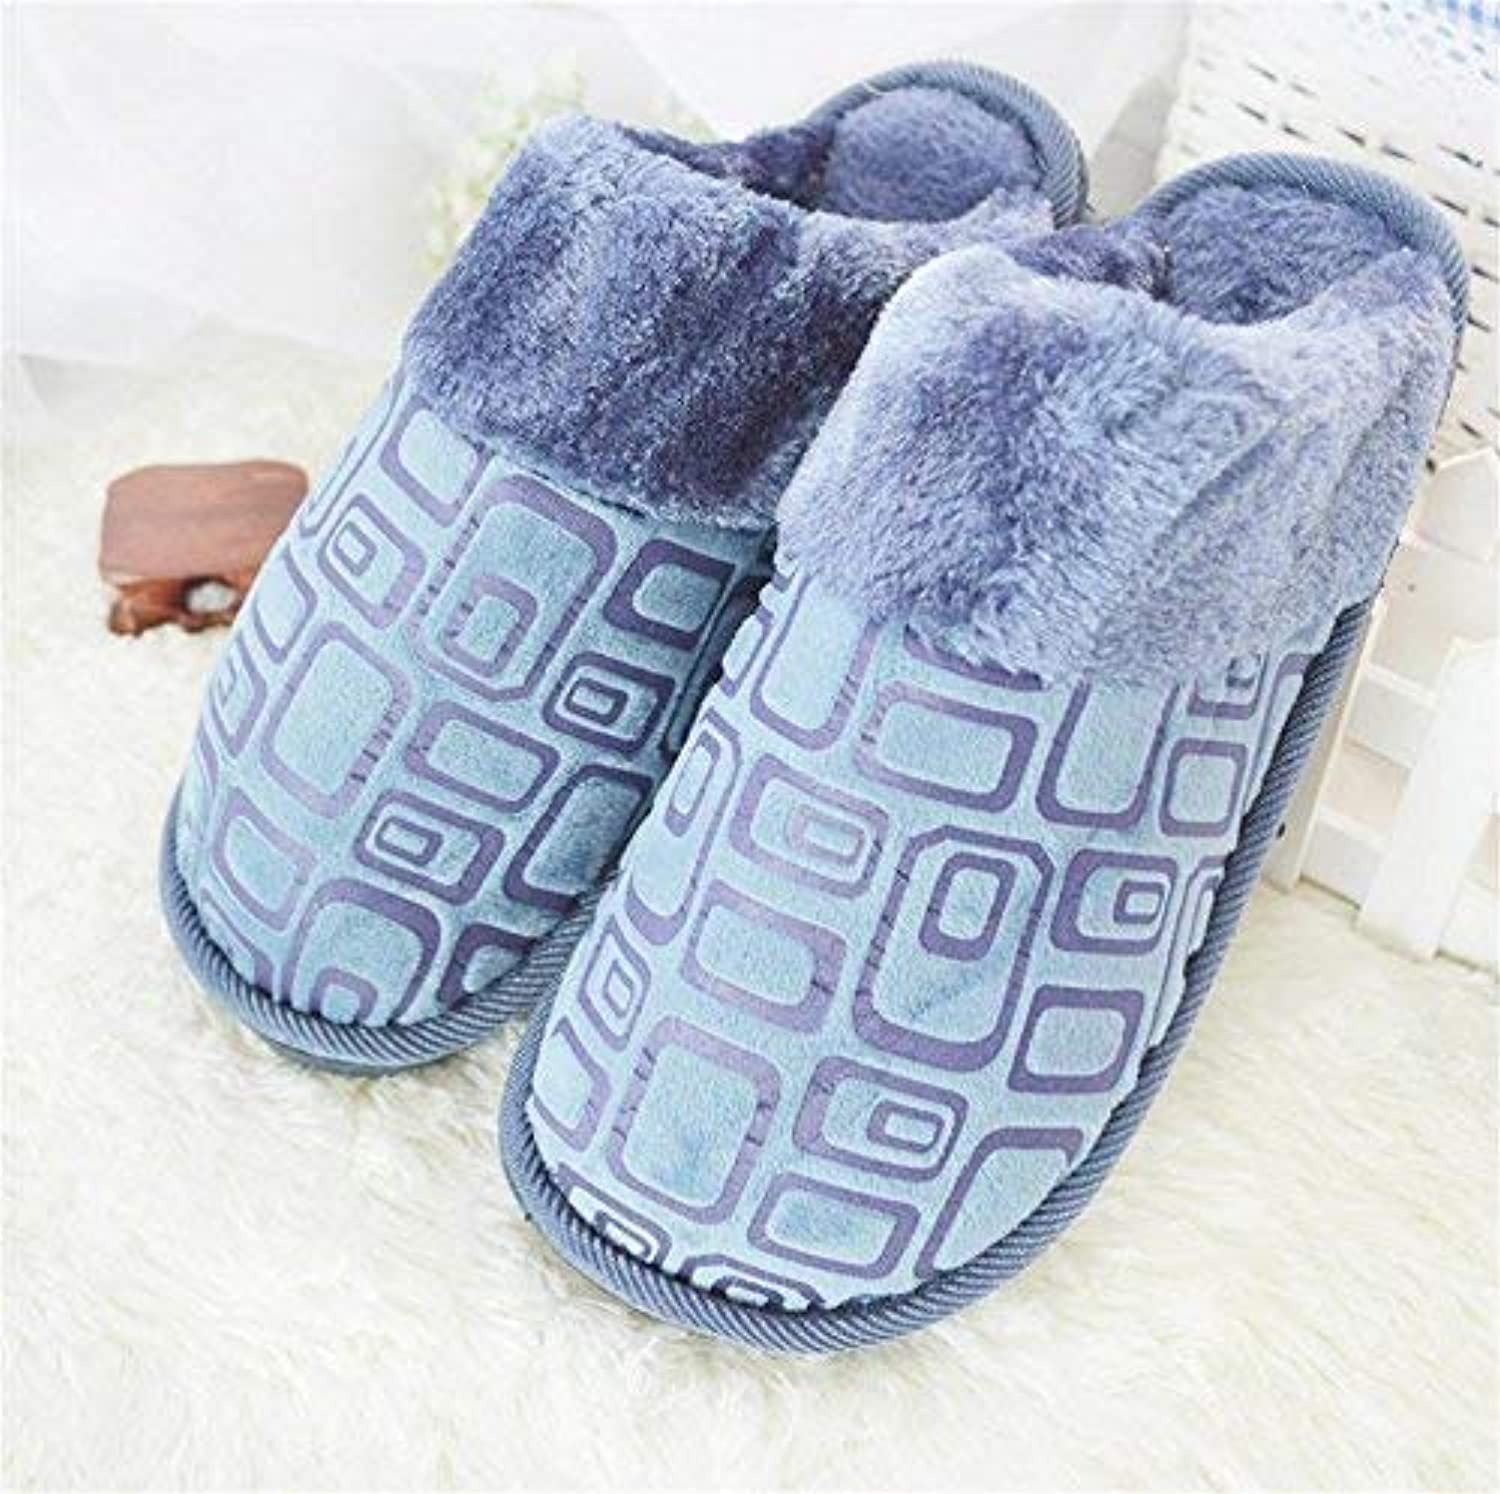 GouuoHi Men Slipper Men 's Home Cotton Slippers bluee Brown shoes Indoor Keep Warm Casual Slippers Soild color Personality Quality for Men